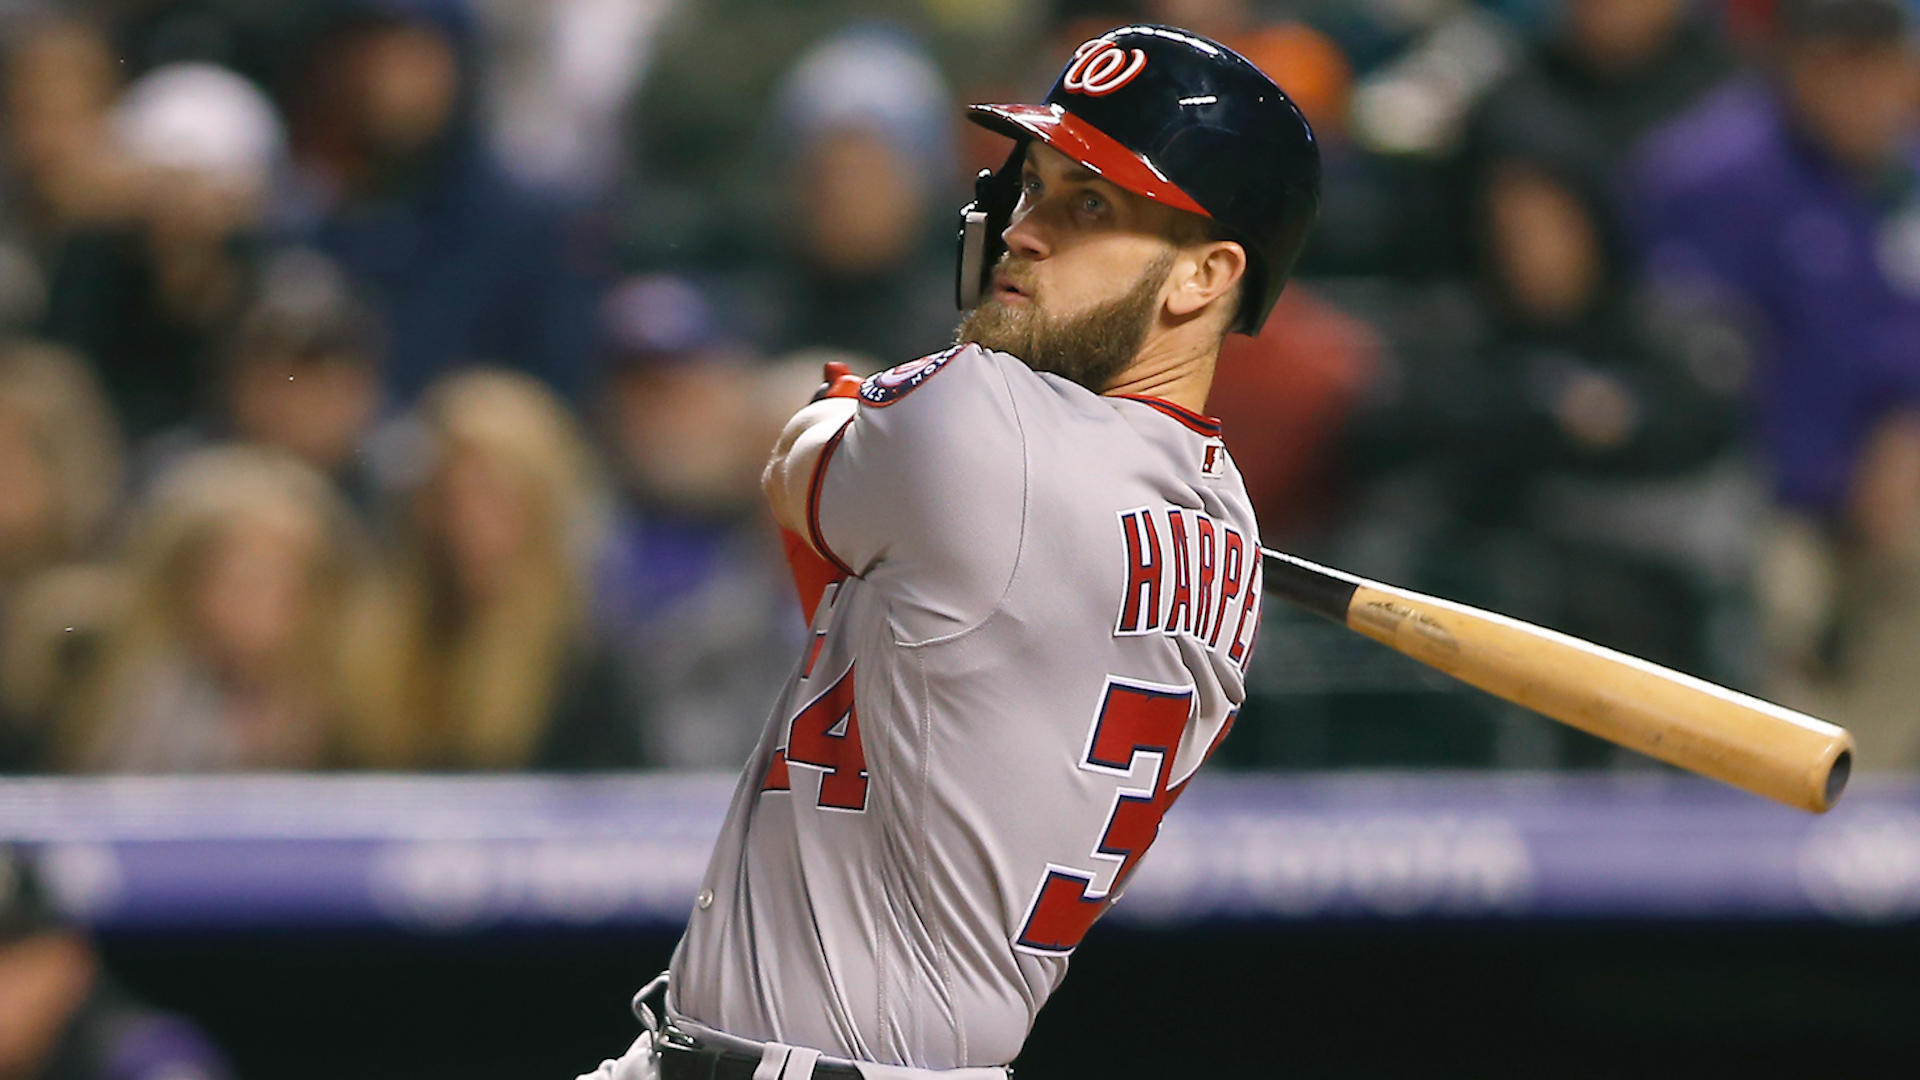 MLB rumors: Phillies ramping up negotiations with Bryce Harper; Mets' Noah Syndergaard not interested in extension